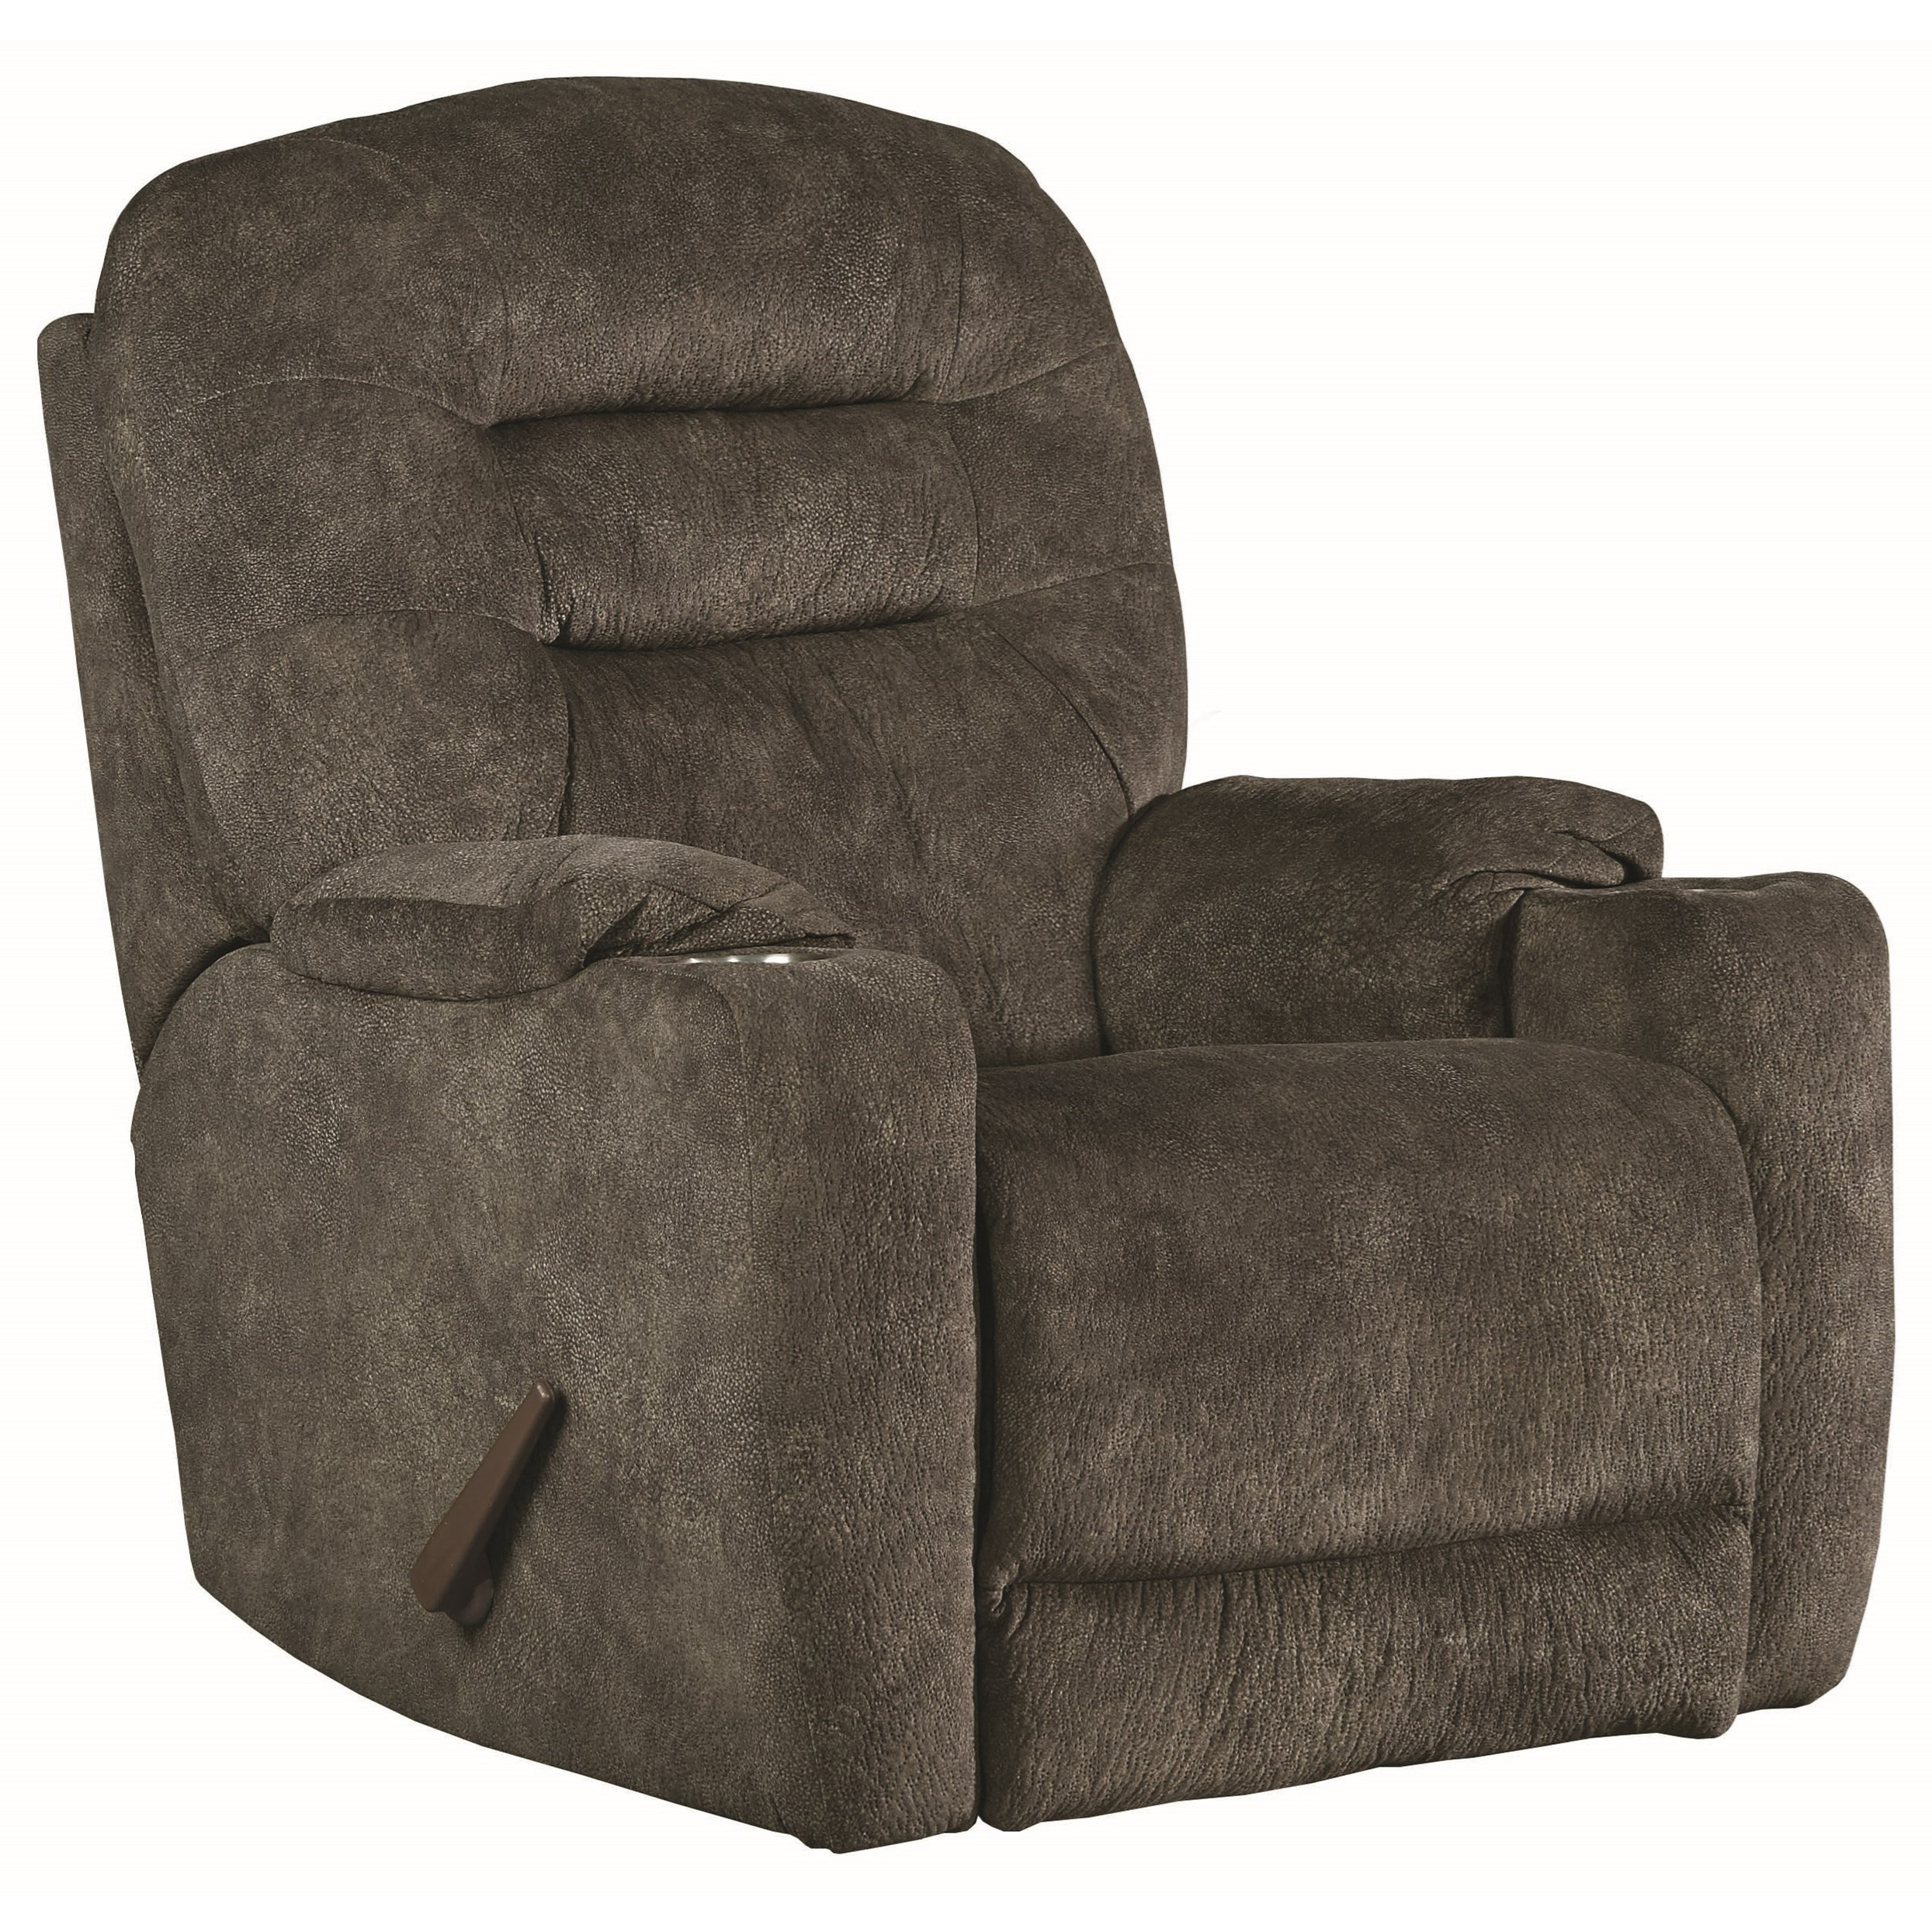 Front Row Rocker Recliner by Southern Motion at Sparks HomeStore